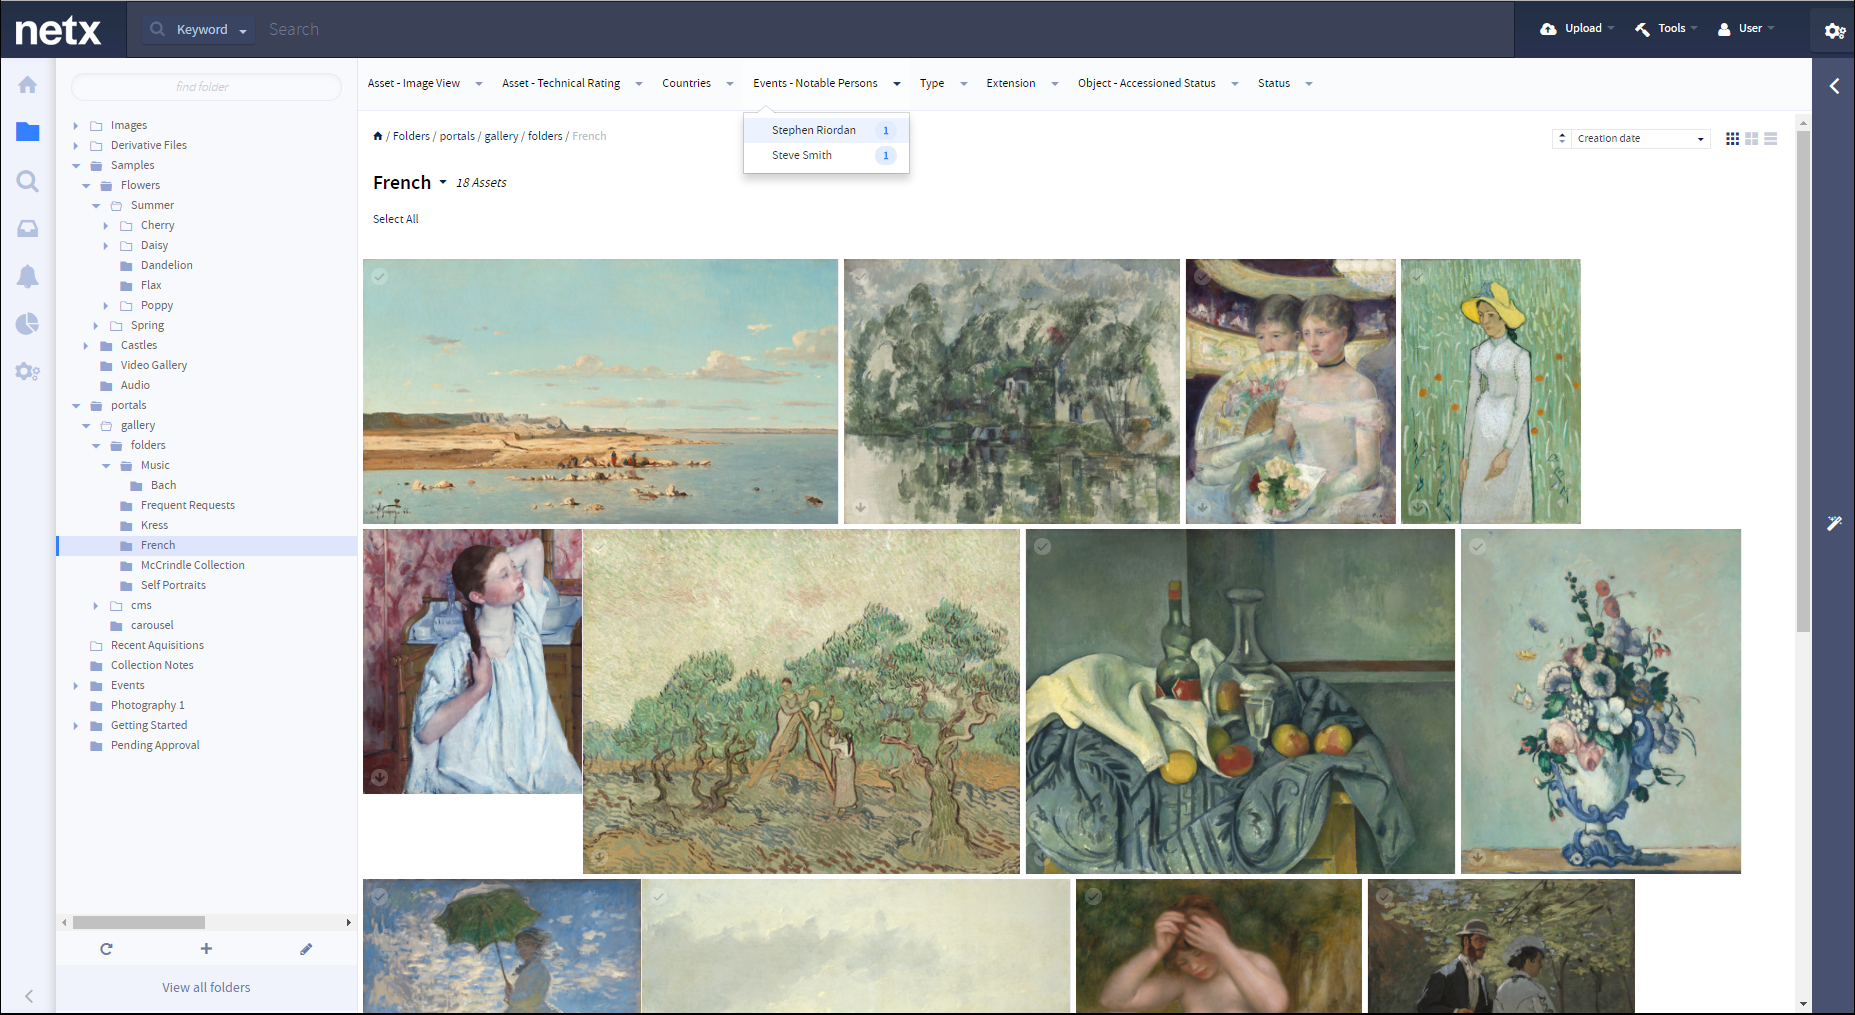 digital asset management image gallery